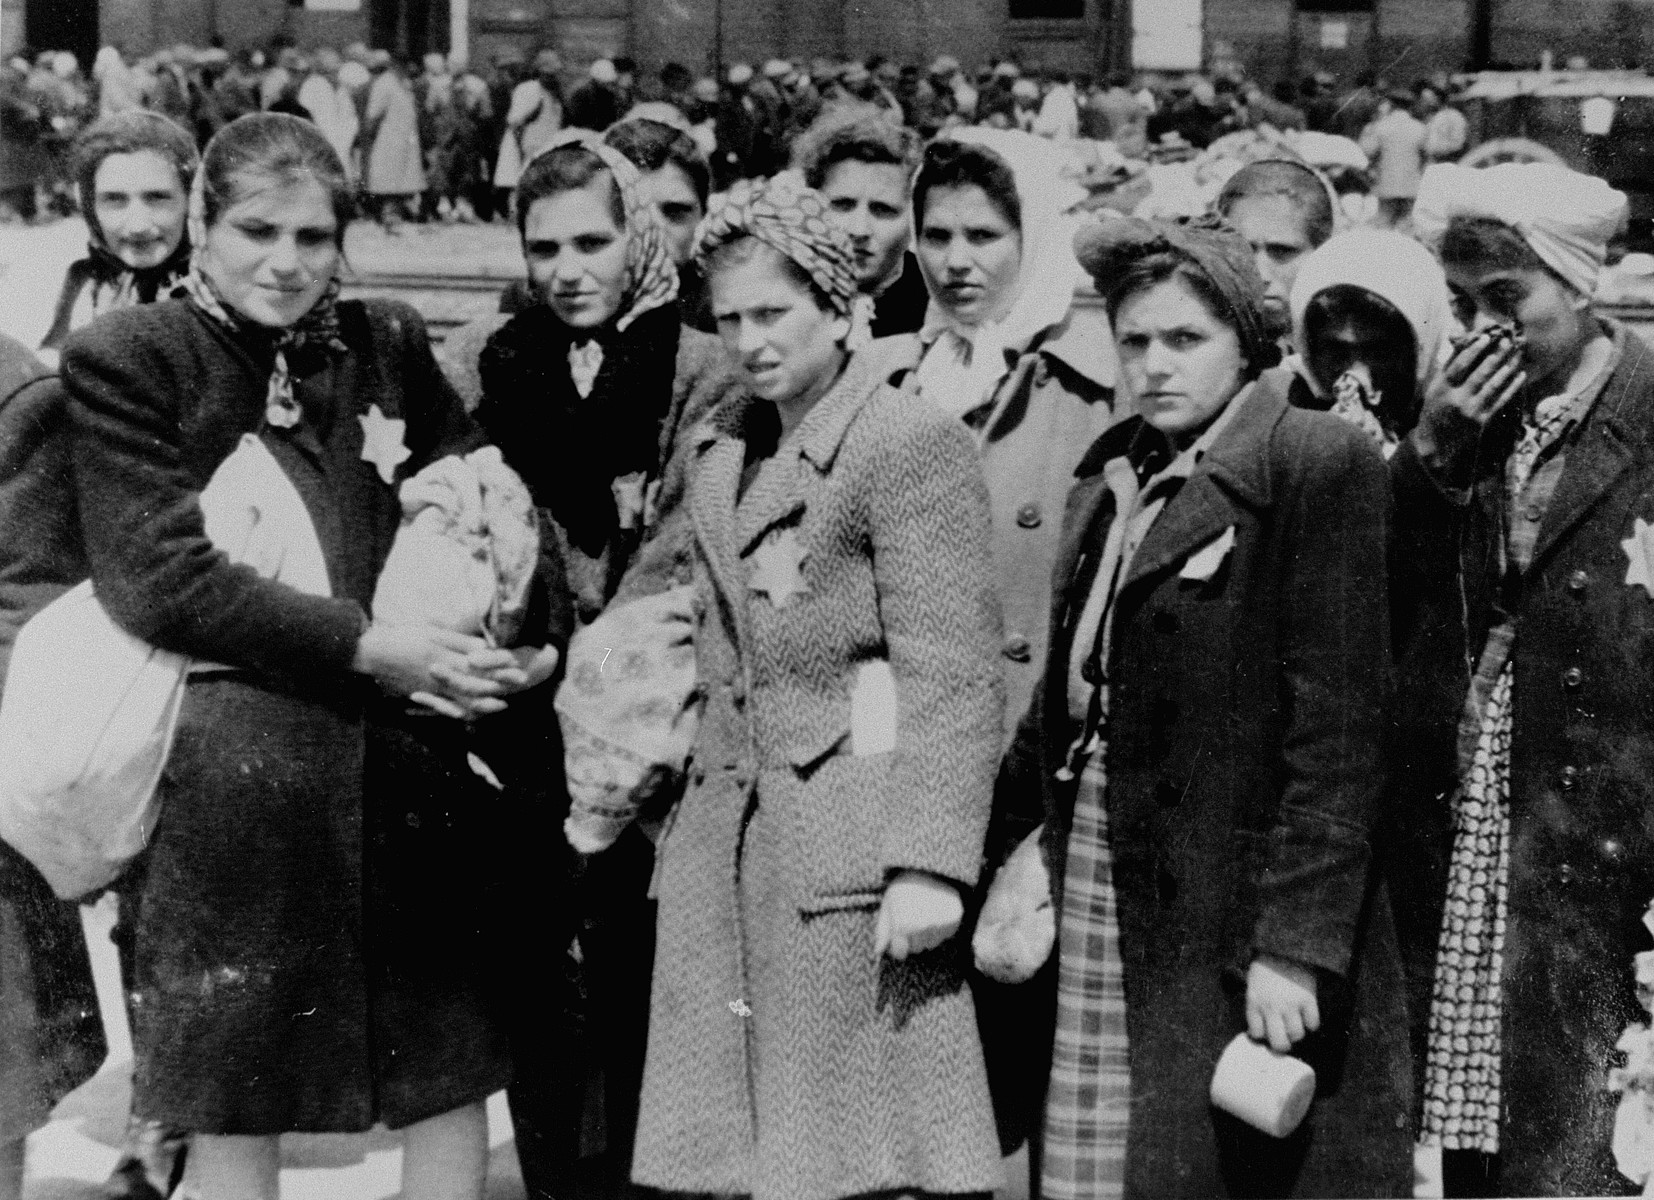 Jewish women from Subcarpathian Rus who have been selected for forced labor at Auschwitz-Birkenau, wait to be taken to another section of the camp.  Pictured from left to right are Lili (Mueller) Yakobovics, Sima Mueller and Rozi (Mueller) Bittman, three sisters from Tesco.  Rozi (Smilovics) Grever is standing second from right, holding a cup. Her sisters Mariska (Smilovics) Mueller and Gitza are in the center in the second row.  Also pictured are Ester Klein (far left, back row), and Elly Berkovits, center back with her cheek and mouth partially obscured (see her mother and brother in photogaph #77295).  Also possibly pictured are Rifcsu and Leah Dressler.